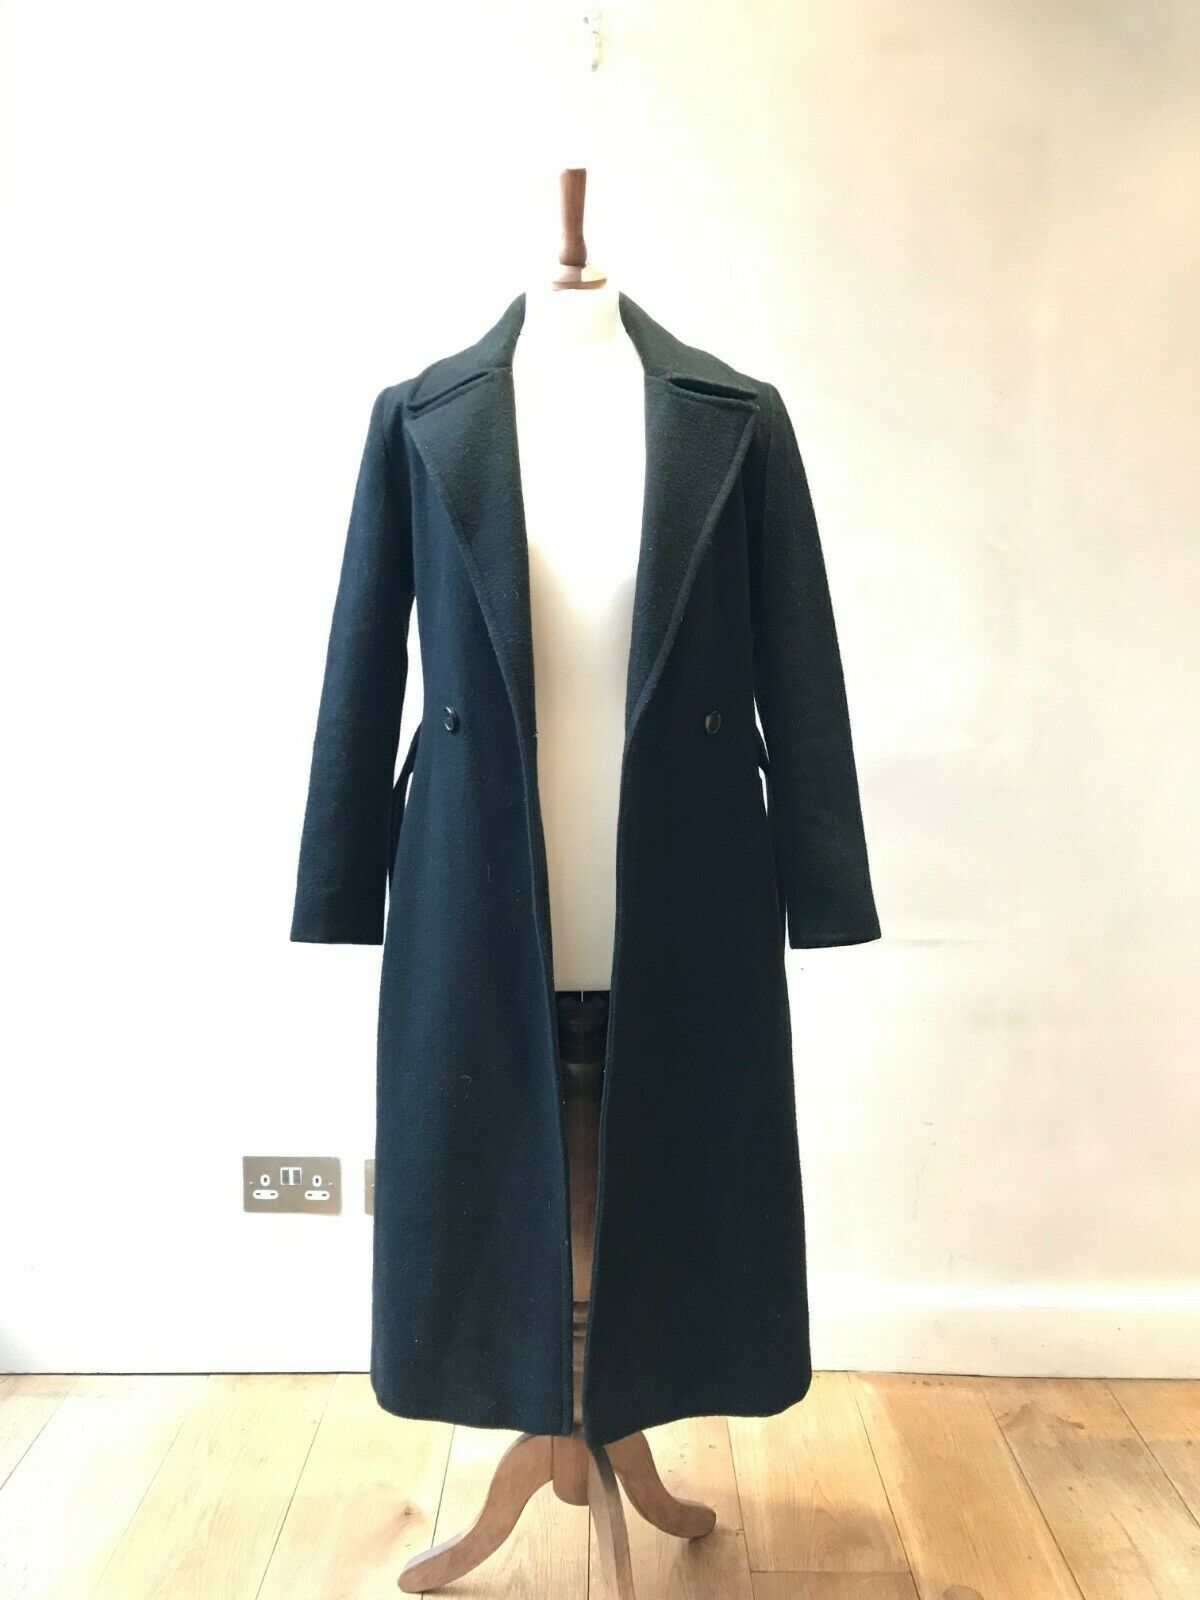 Long, black, wool, trench coat with belt, Marvin Browne, womens size 8